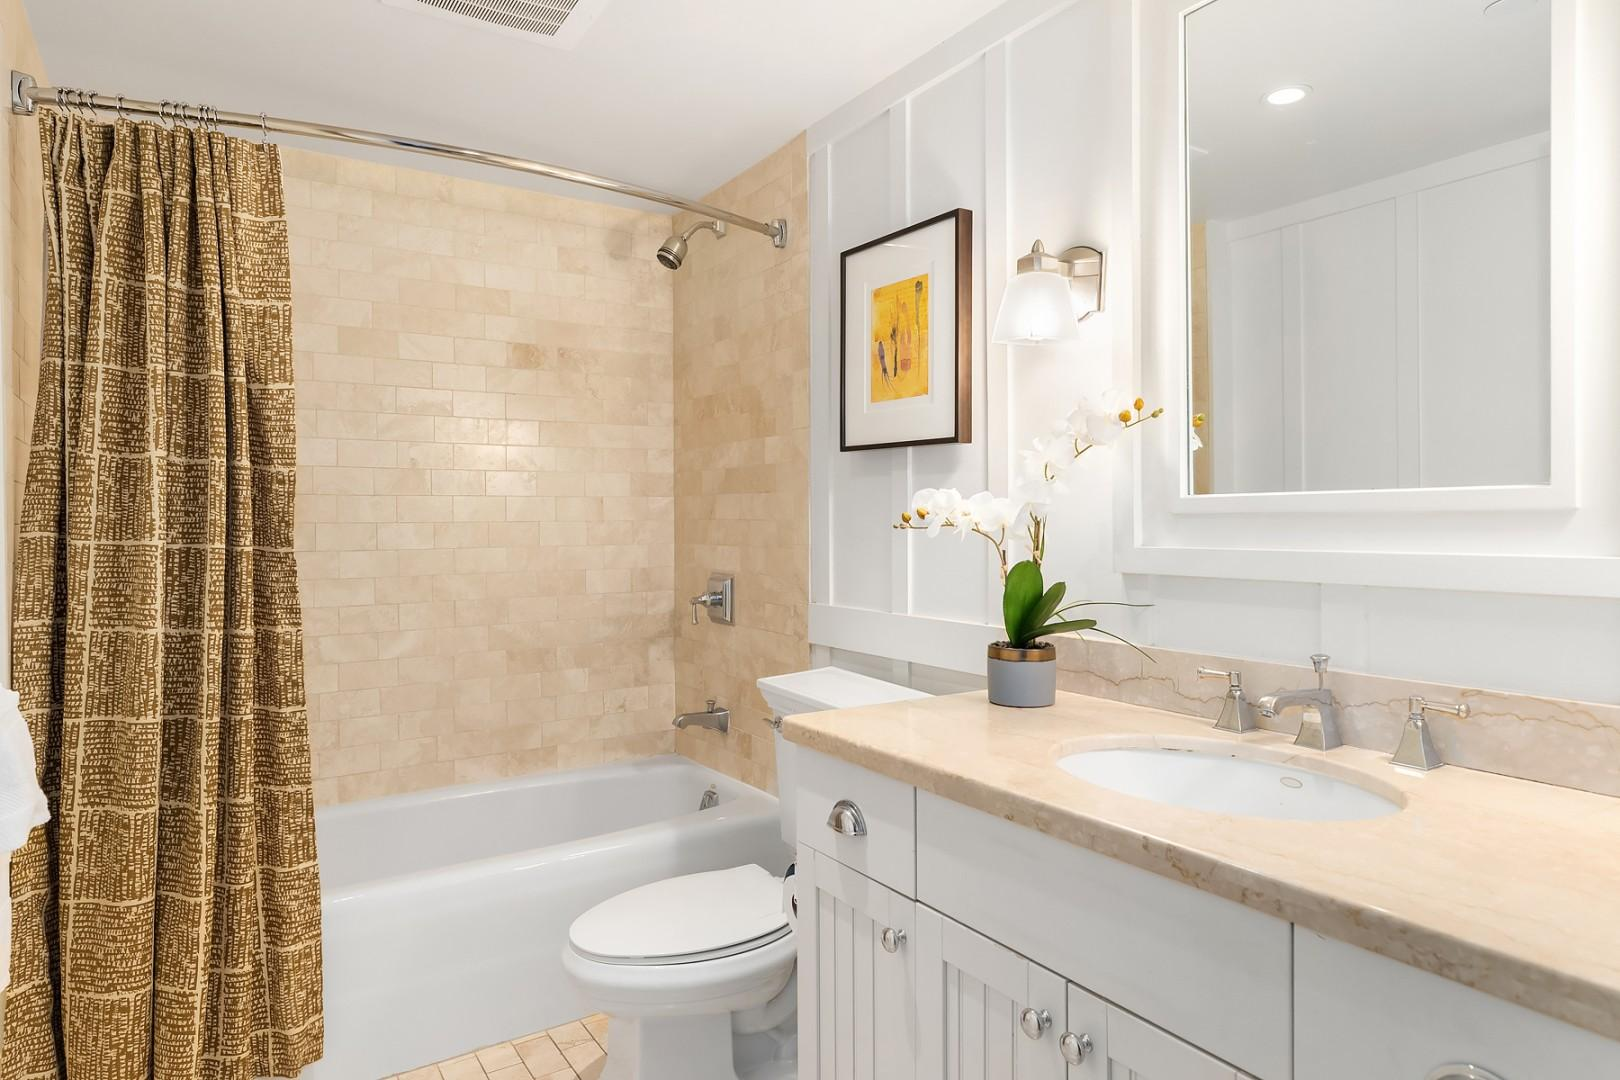 Full guest bath with tub adjacent to the first bedroom.